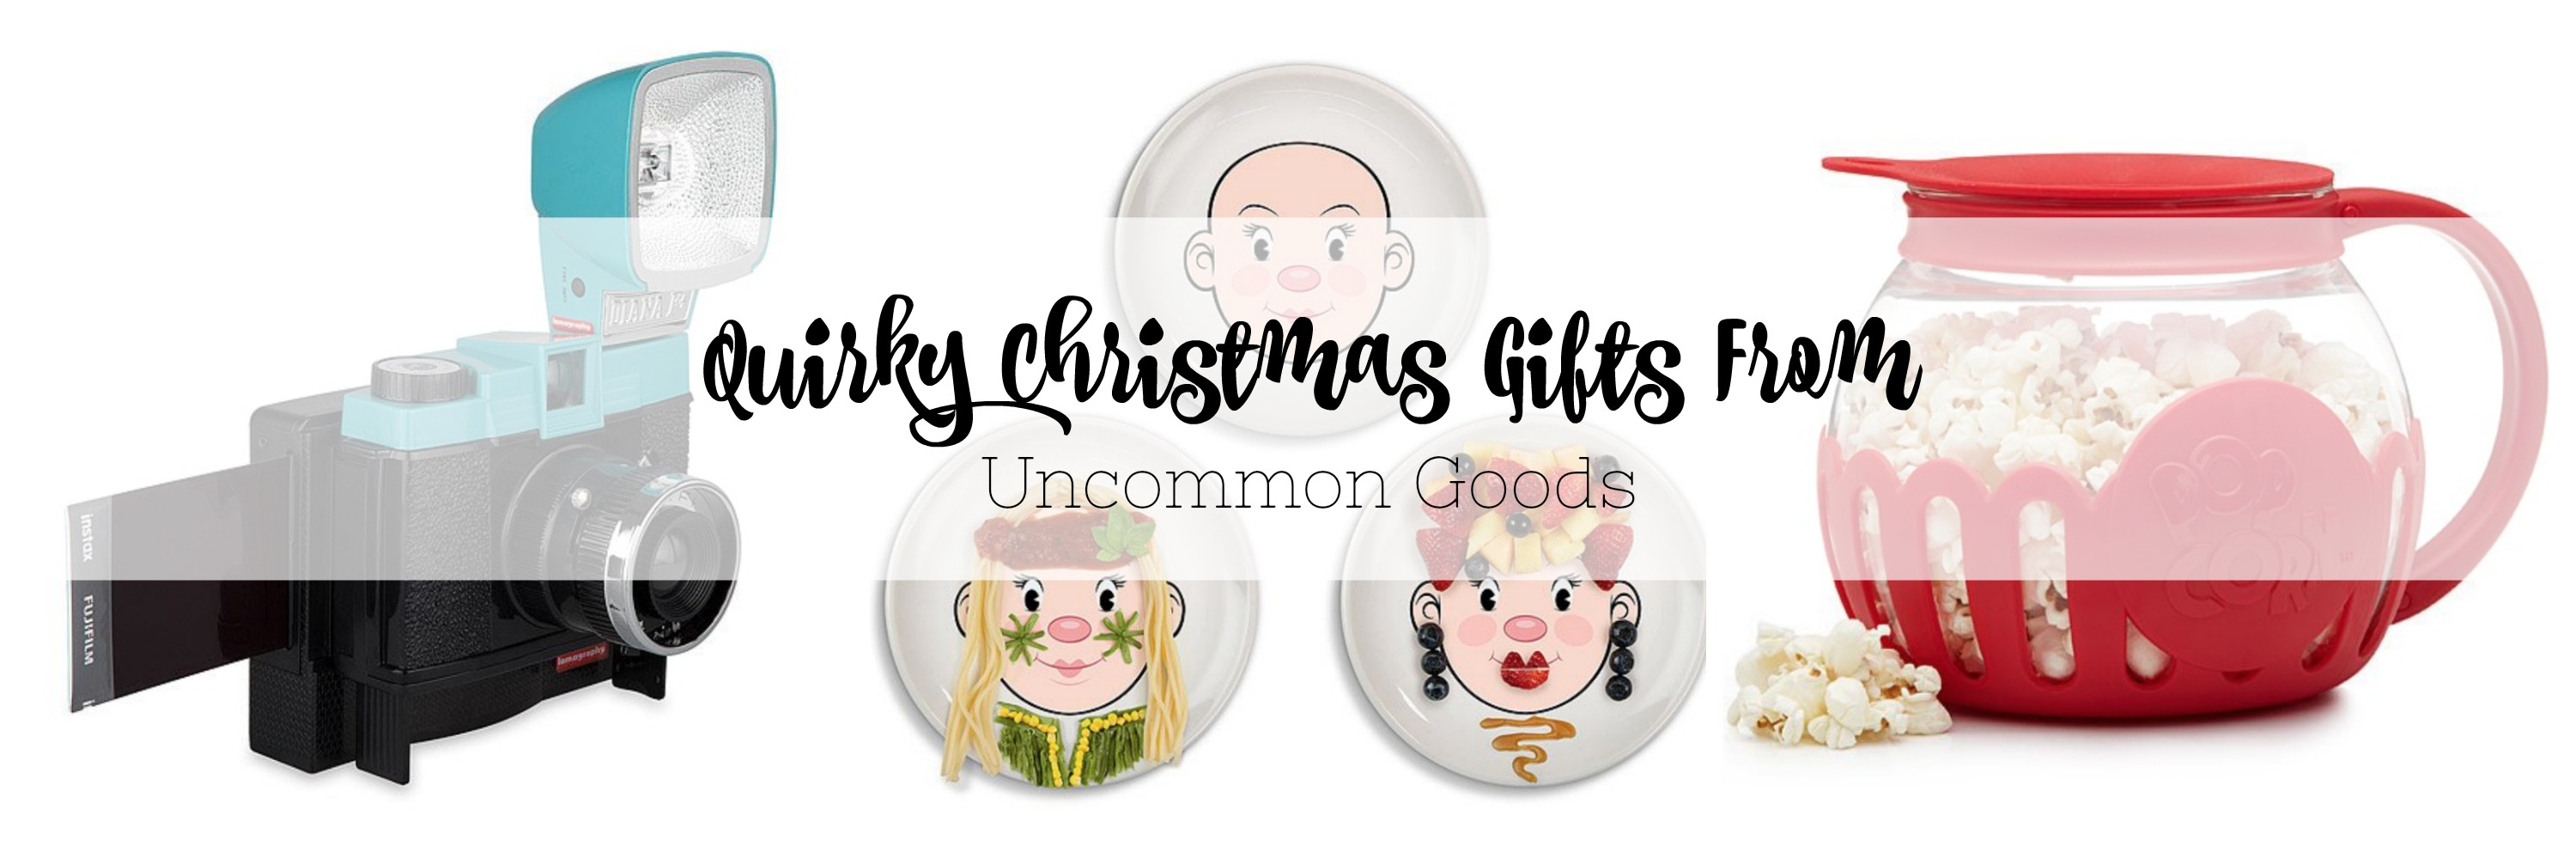 Quirky Christmas Gifts From Uncommon Goods